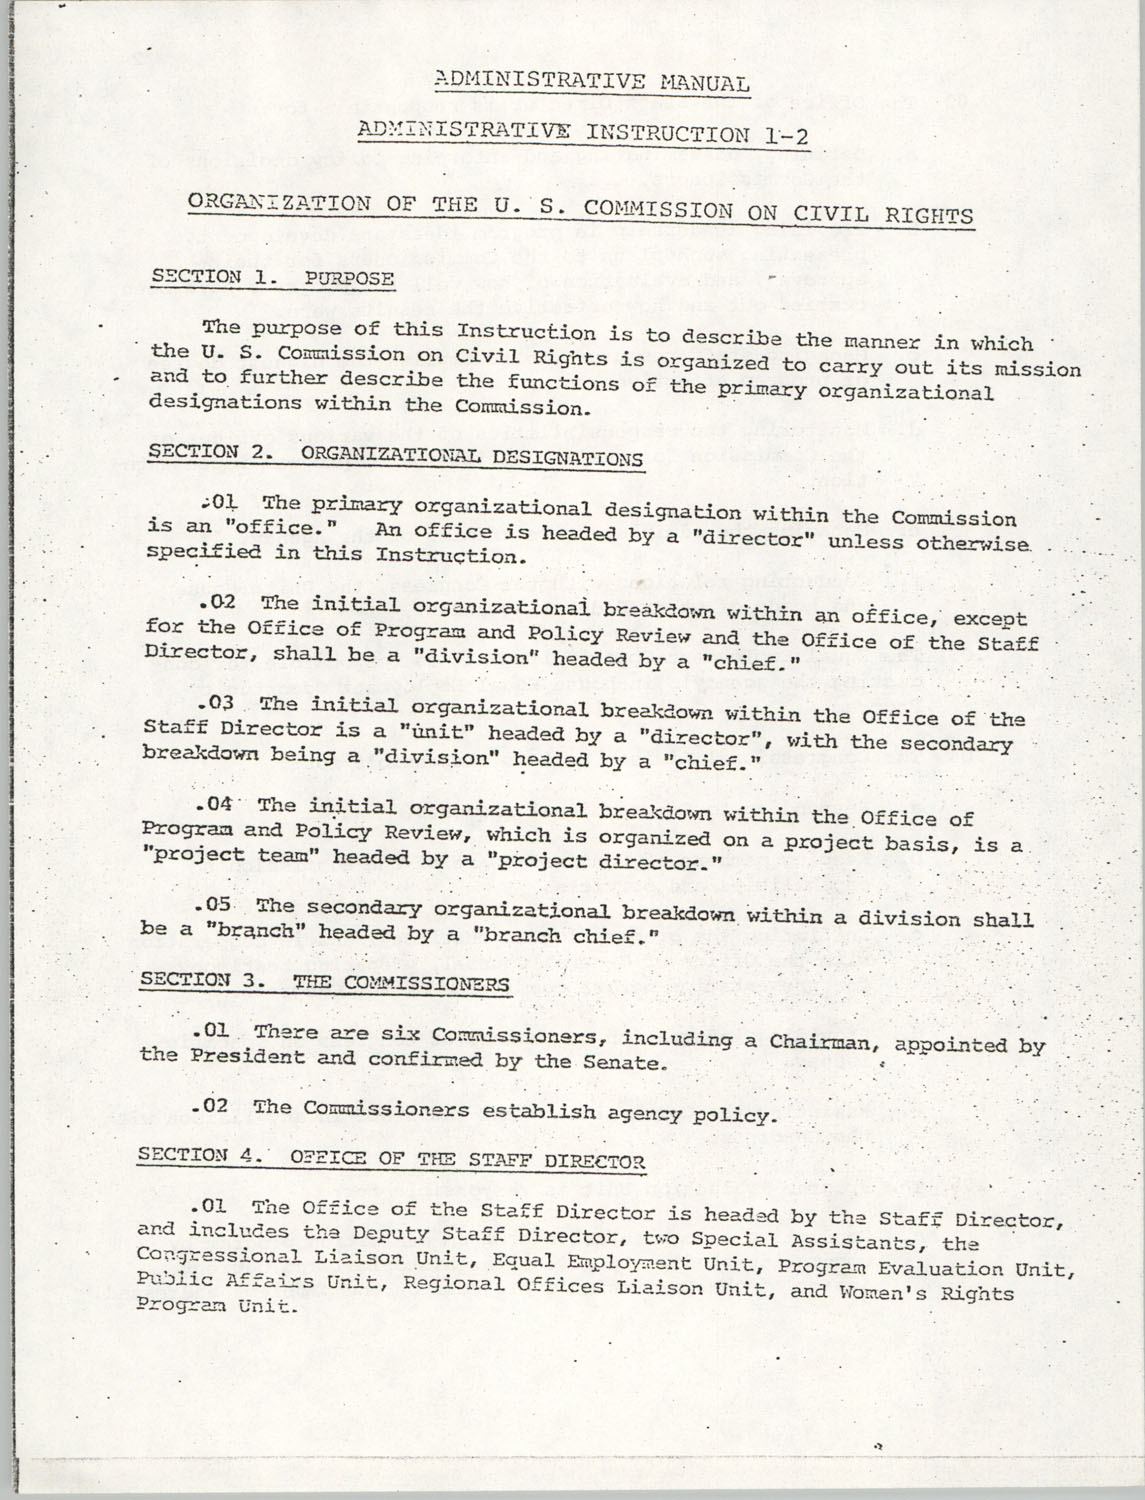 Administrative Manual Instruction 1-2, Organization of the U.S. Commission on Civil Rights, Page 1